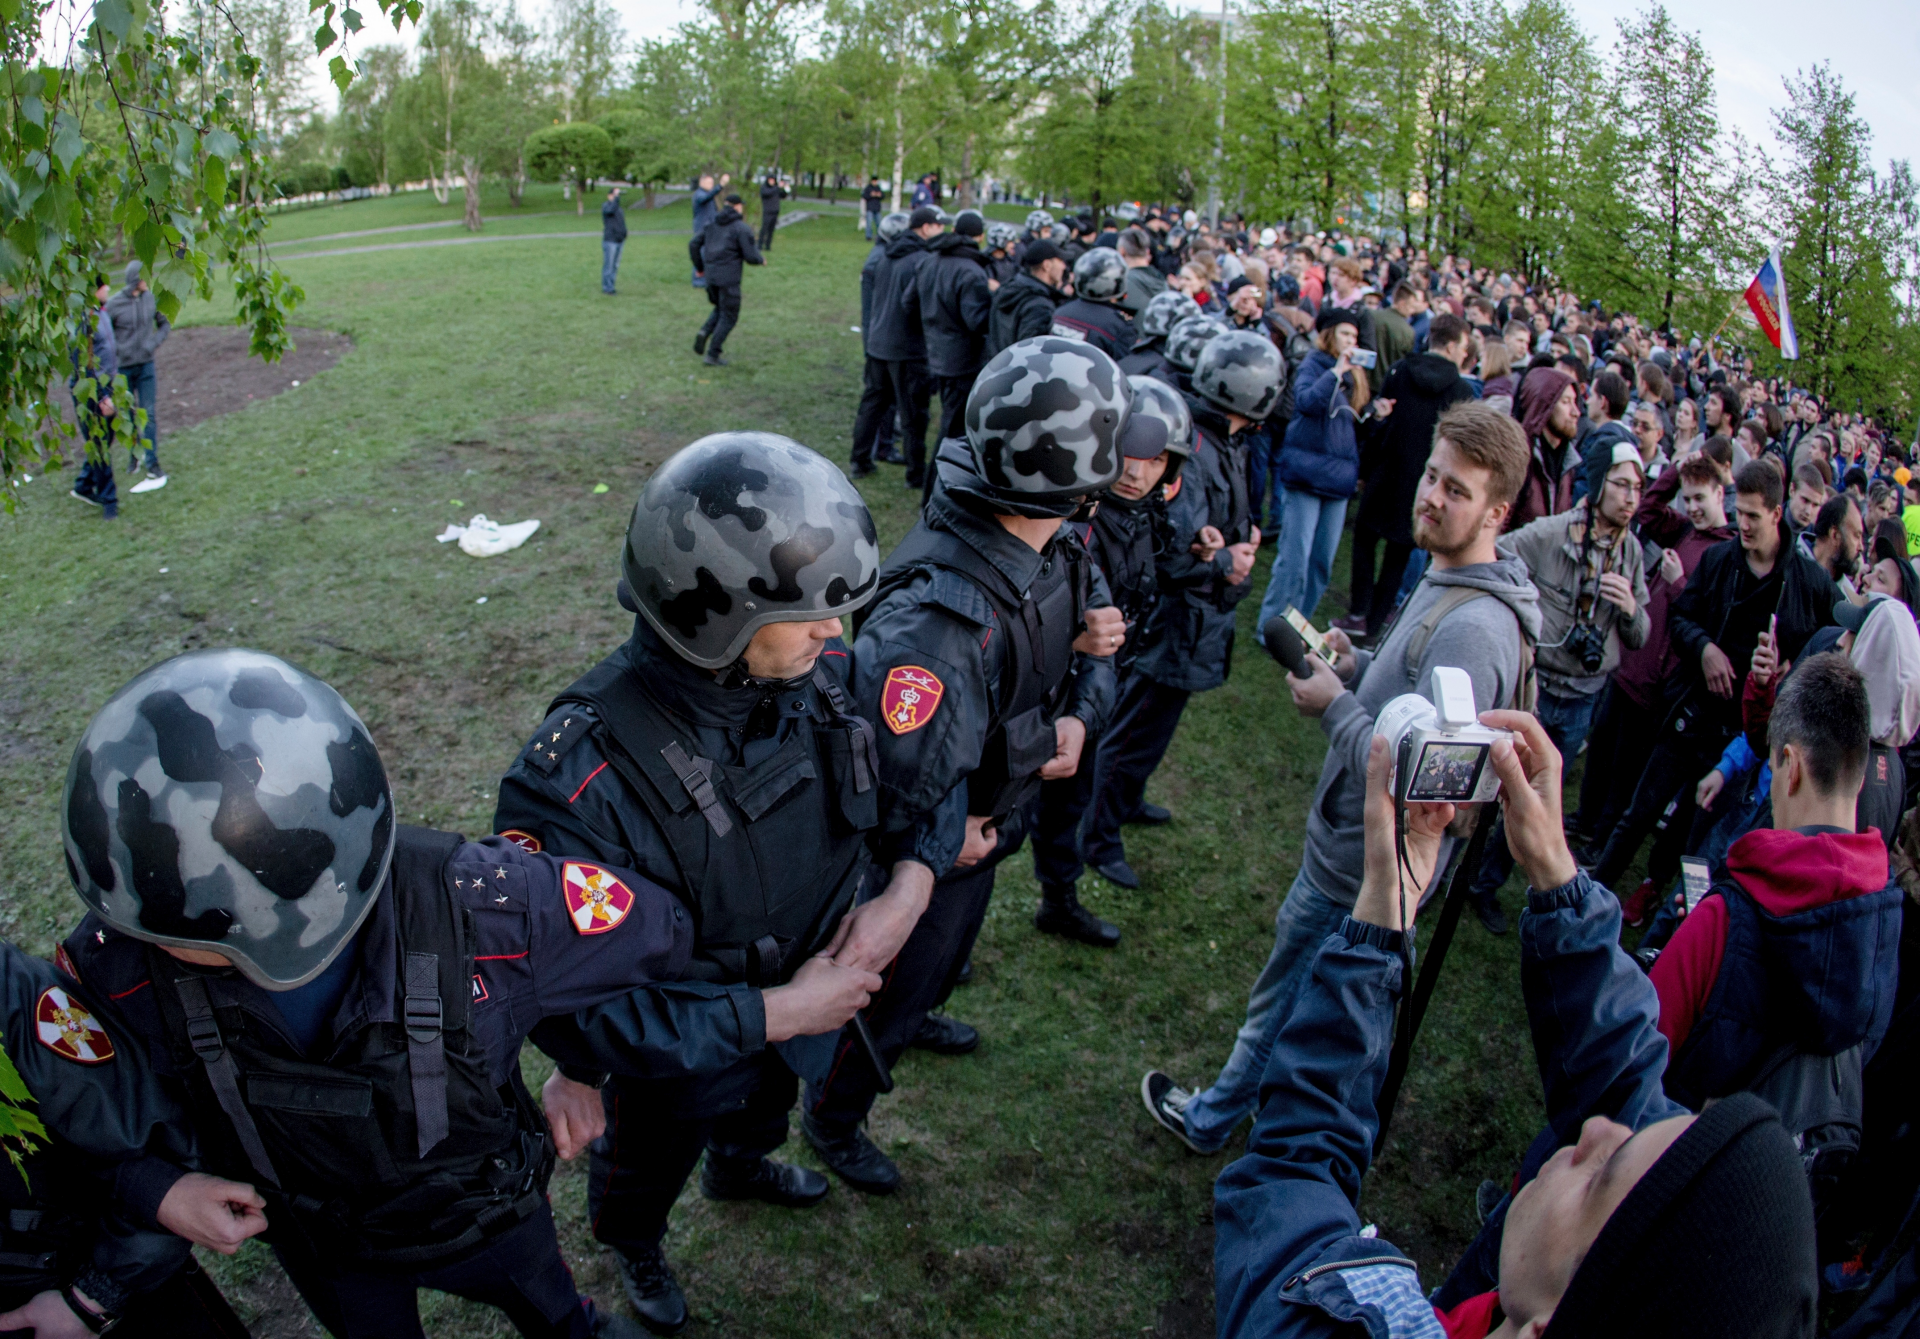 Russian riot police deployed before cathedral protest